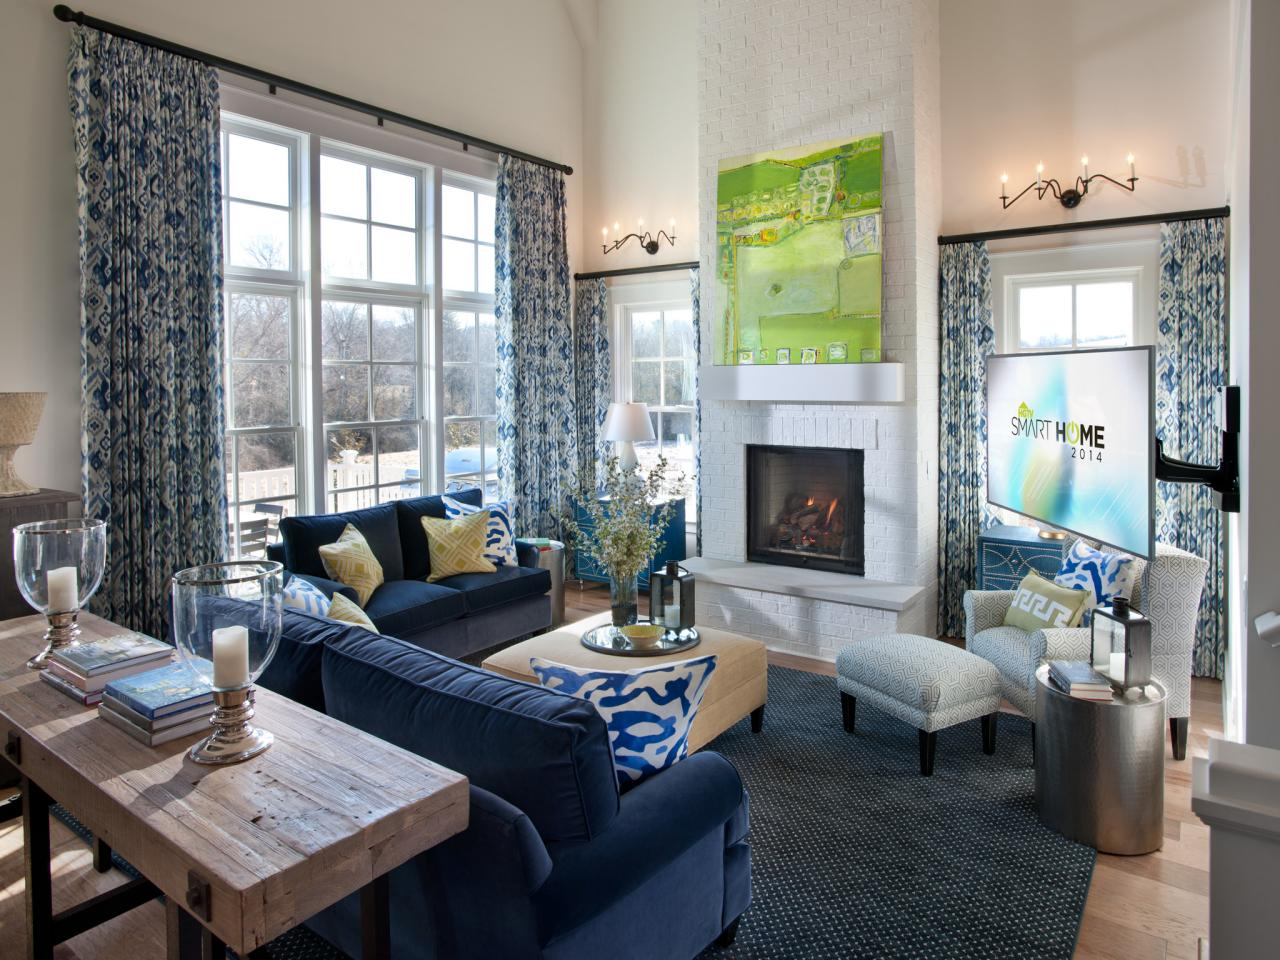 2014 View Photos 17 Photos. Pick Your Favorite Living Room   HGTV Smart Home 2017   HGTV